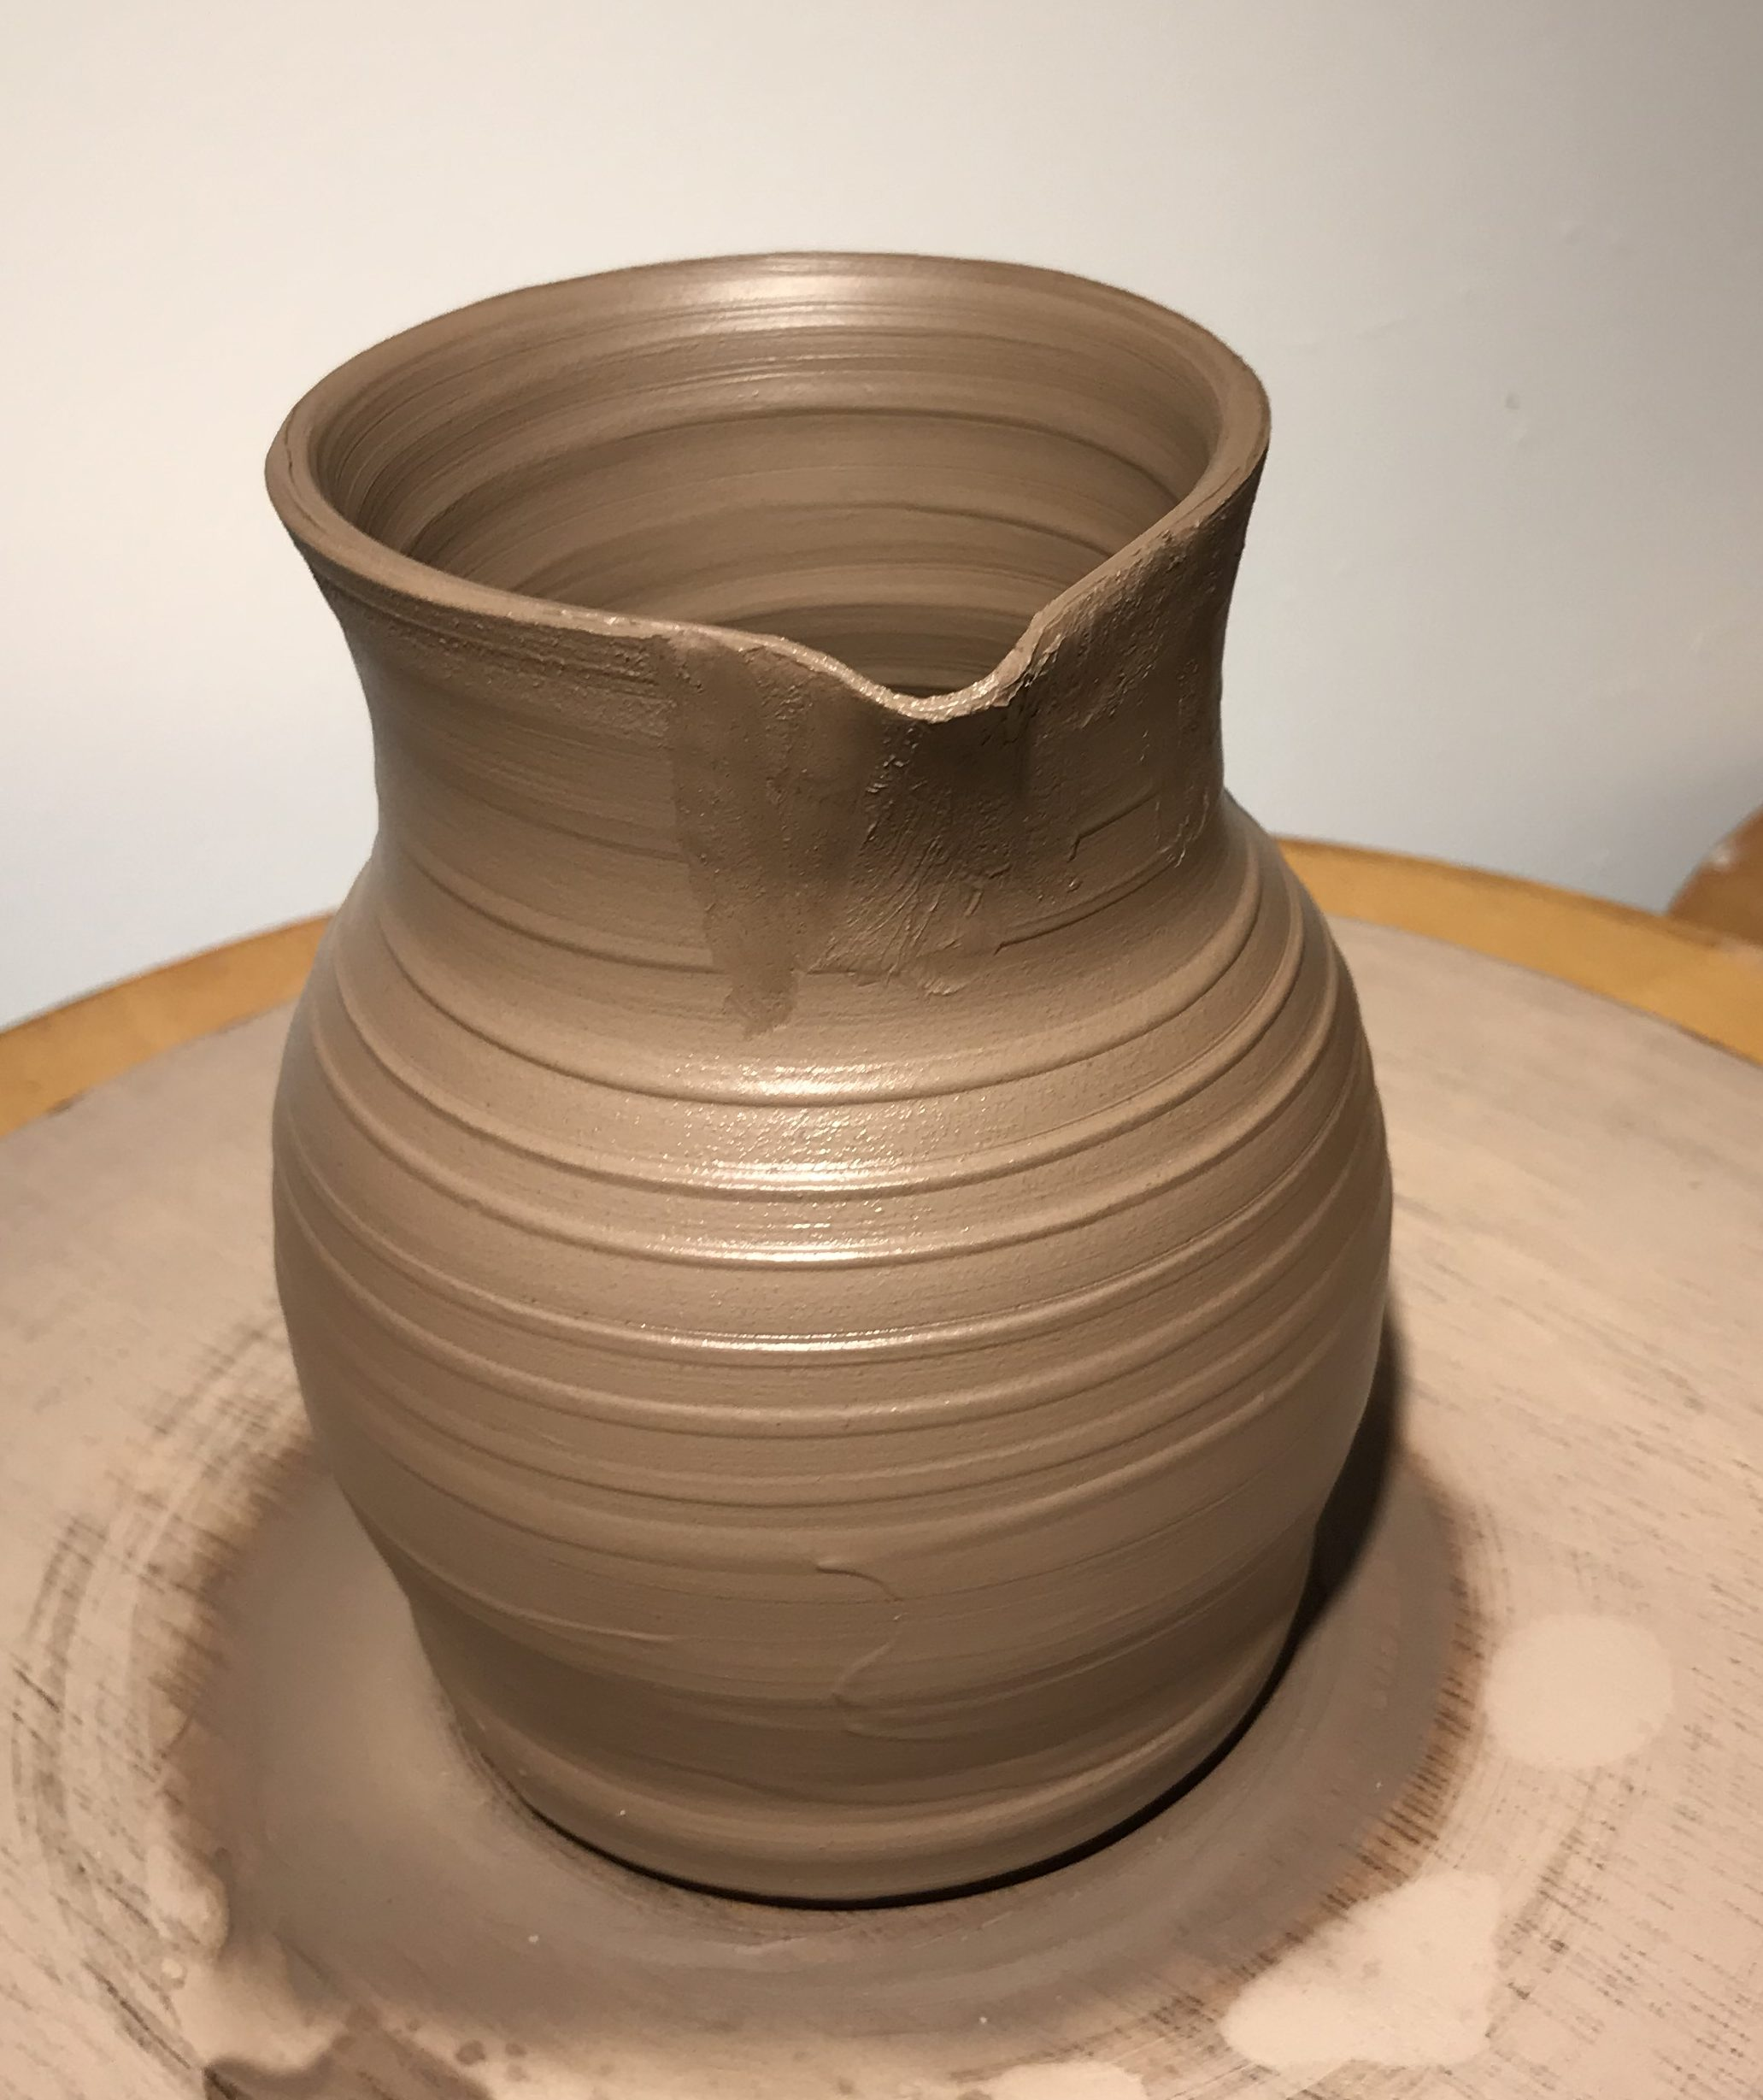 You are currently viewing Day 55: 100 Pots in 100 Days